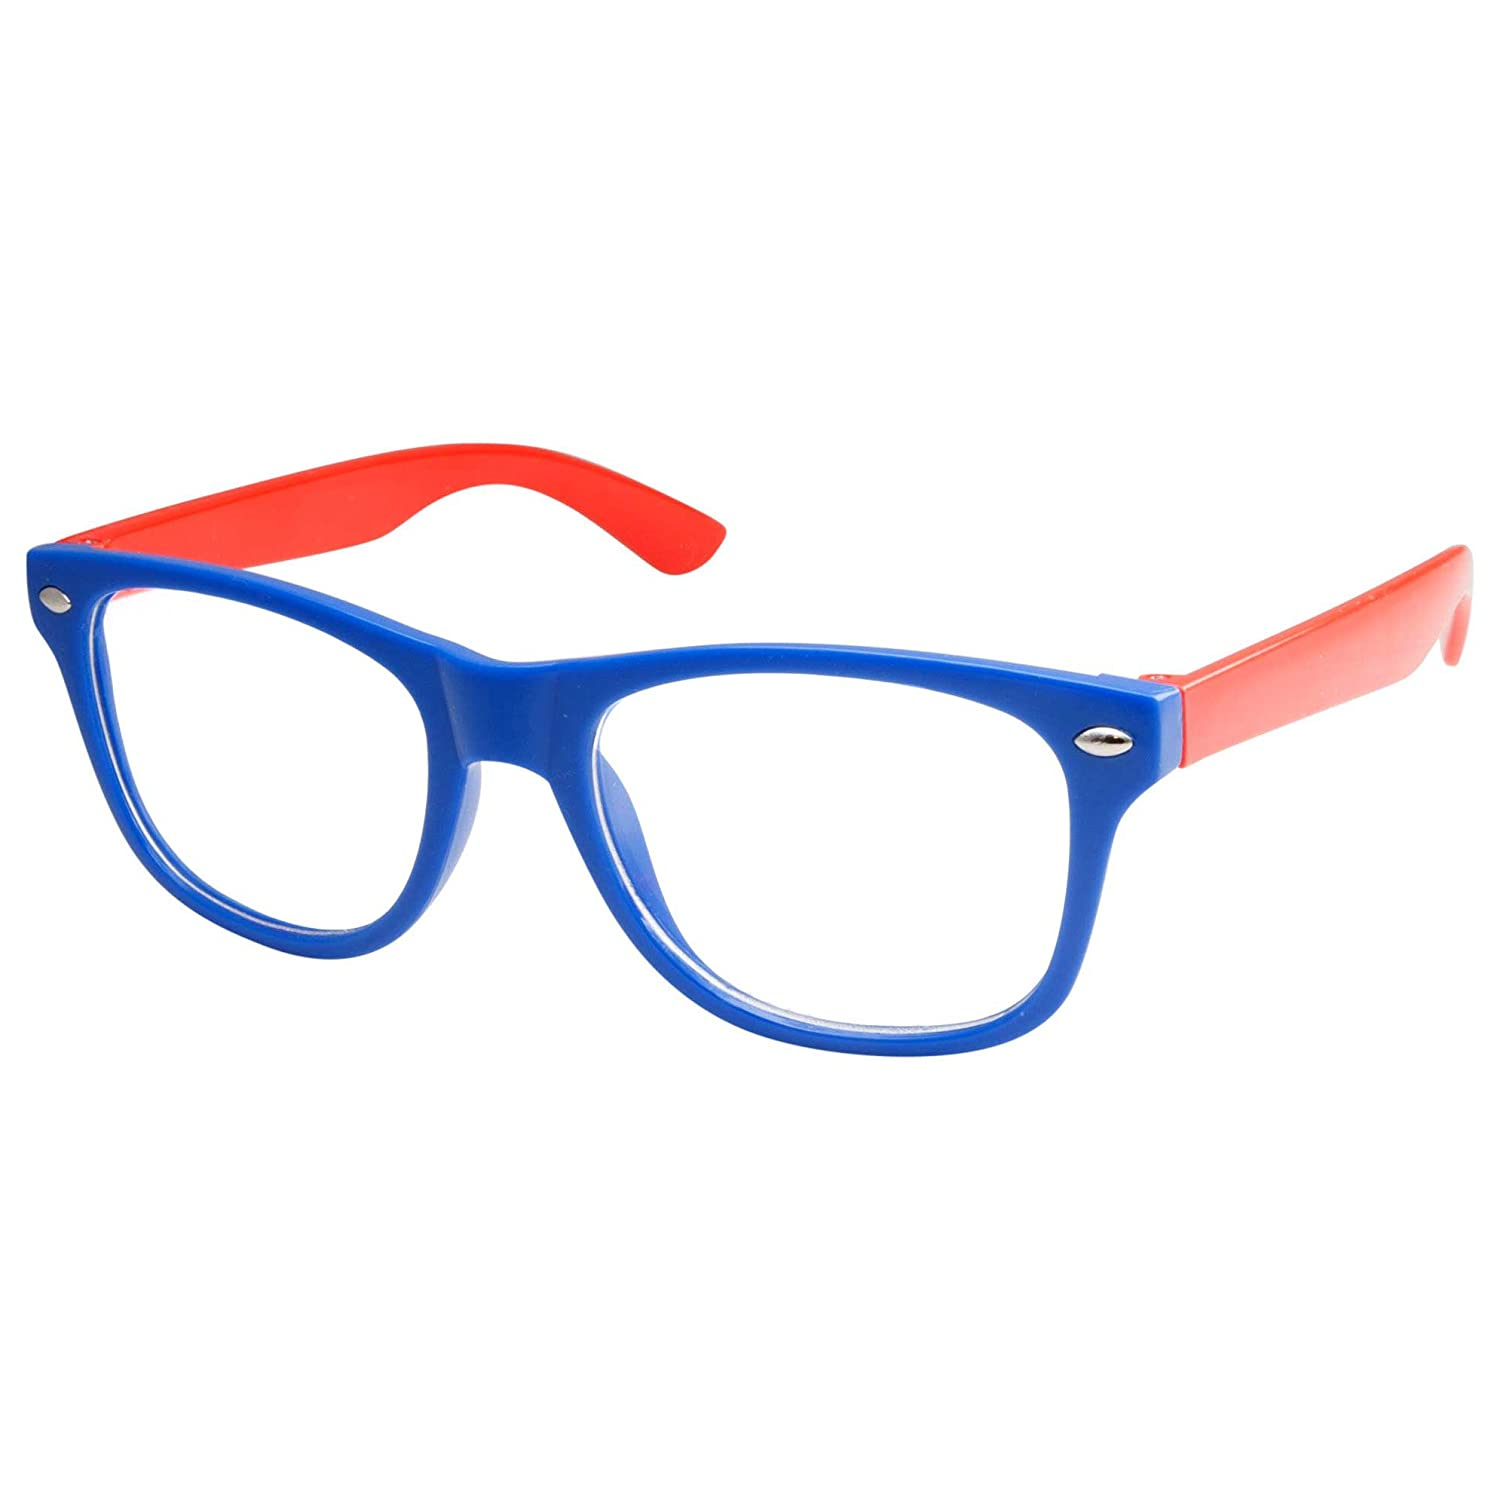 5efc5f22e3f Amazon.com  Kids Nerd Retro Two Color Frame Clear Lens Childrens Fake Eye  Glasses (Age 3-10) Blue Red  Clothing